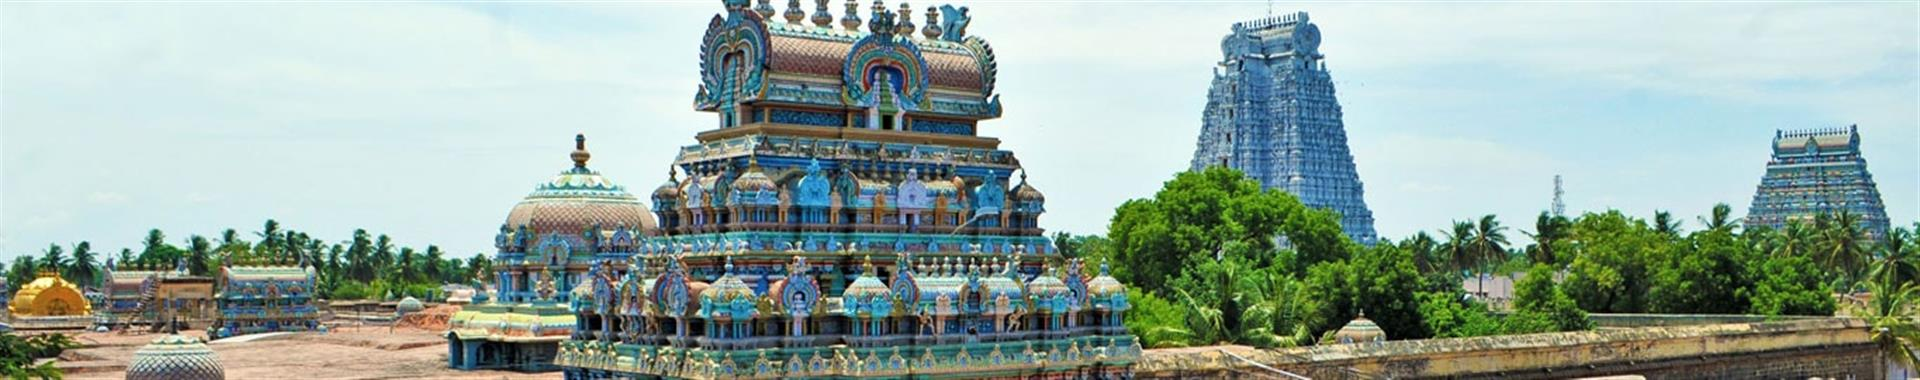 Madurai Tour Packages in India